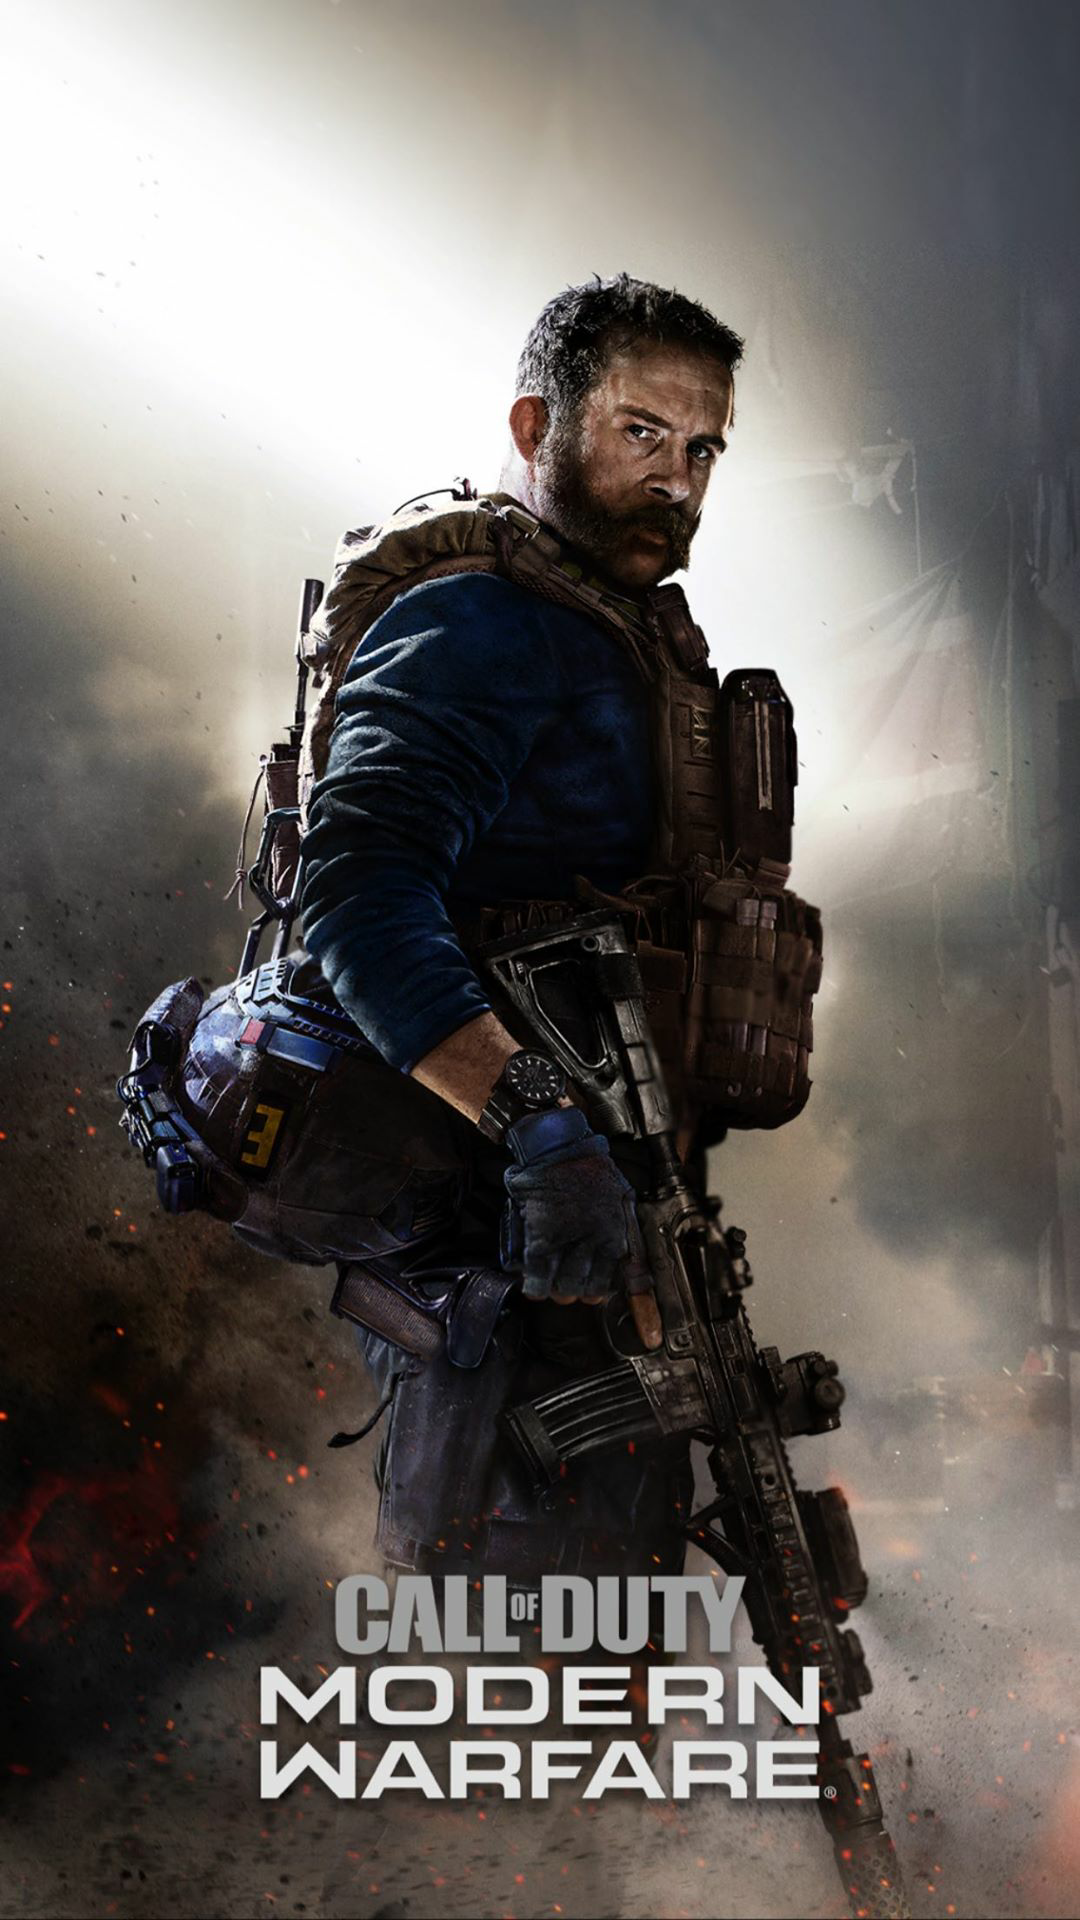 Call Of Duty Captain Price M4 Carbine Rifles 1080x1920 Wallpaper Wallhaven Cc In 2020 Modern Warfare Call Of Duty Warfare Call Of Duty Ghosts